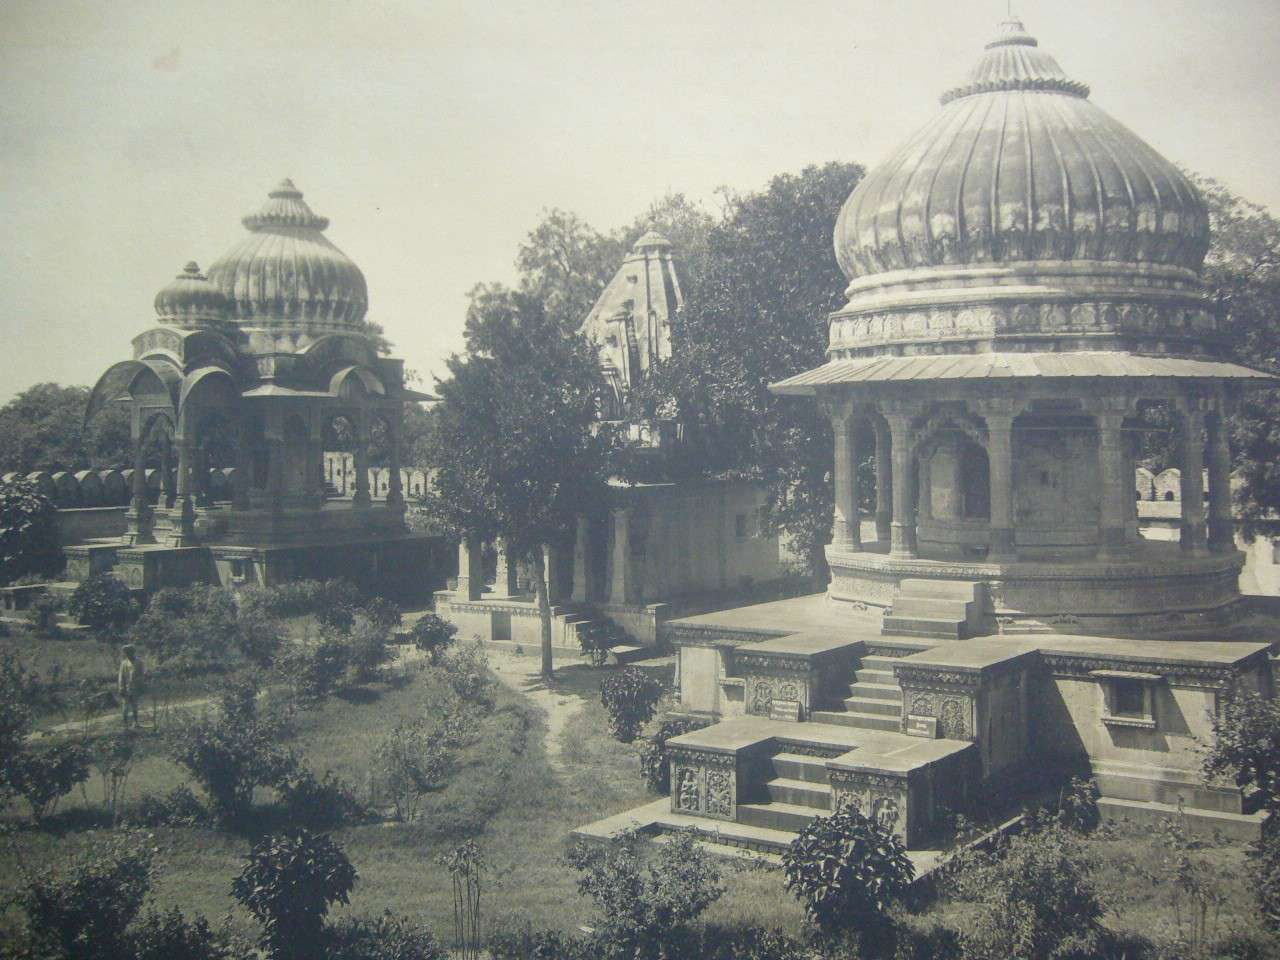 Chhatris, Indore,a photo by Vernon & Co., Bombay, 1912